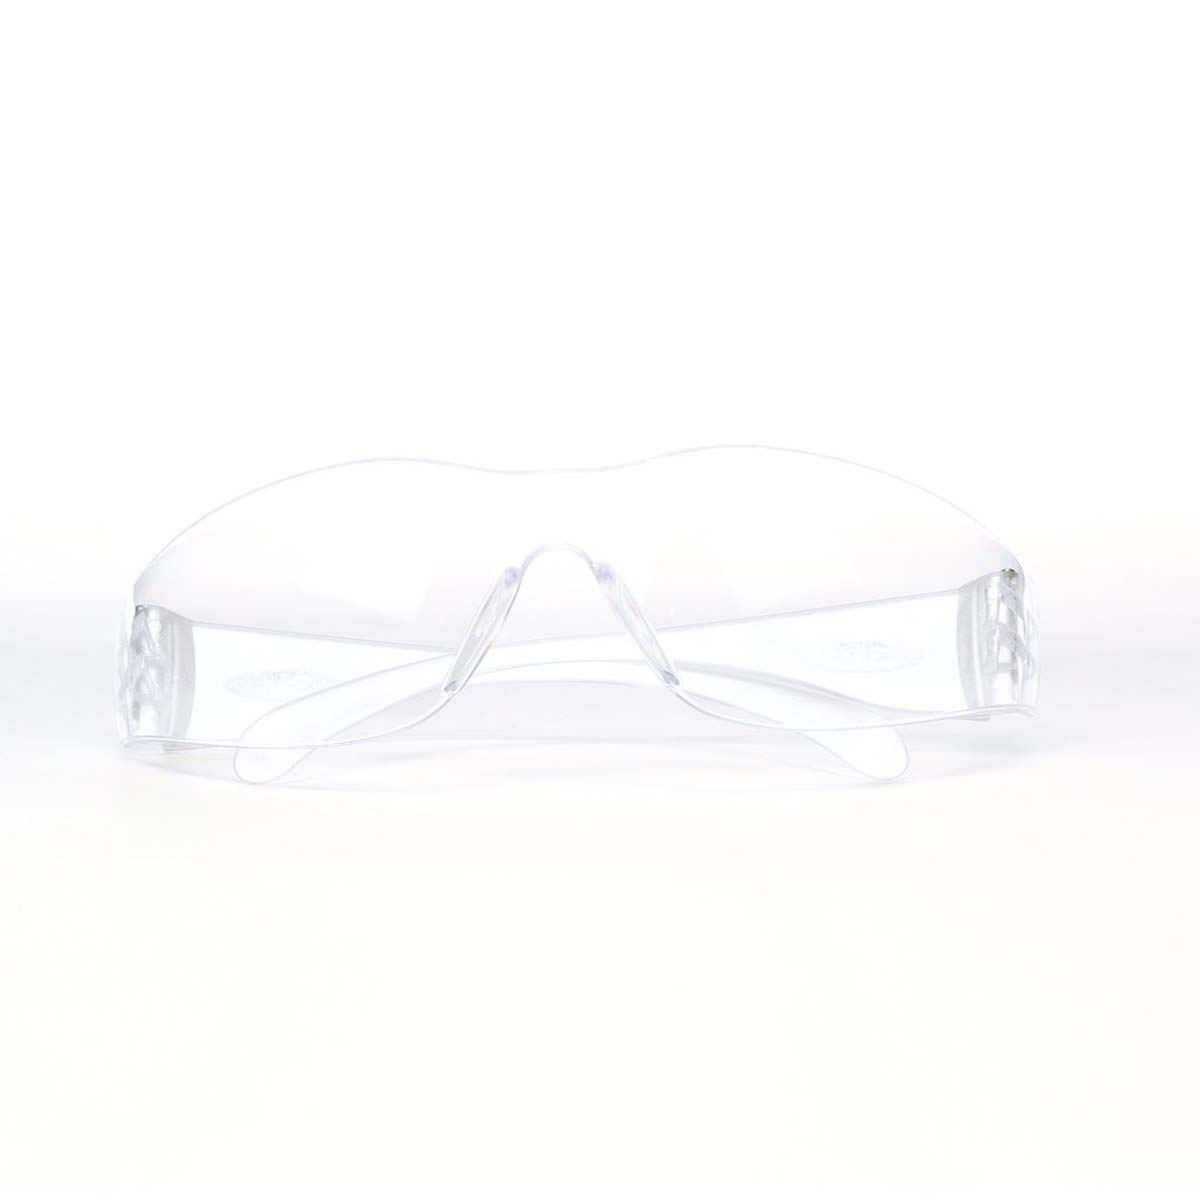 "3Mâ""¢ Virtuaâ""¢ Protective Eyewear 11228-00000-100 Clear Uncoated Lens, Clear Temple"